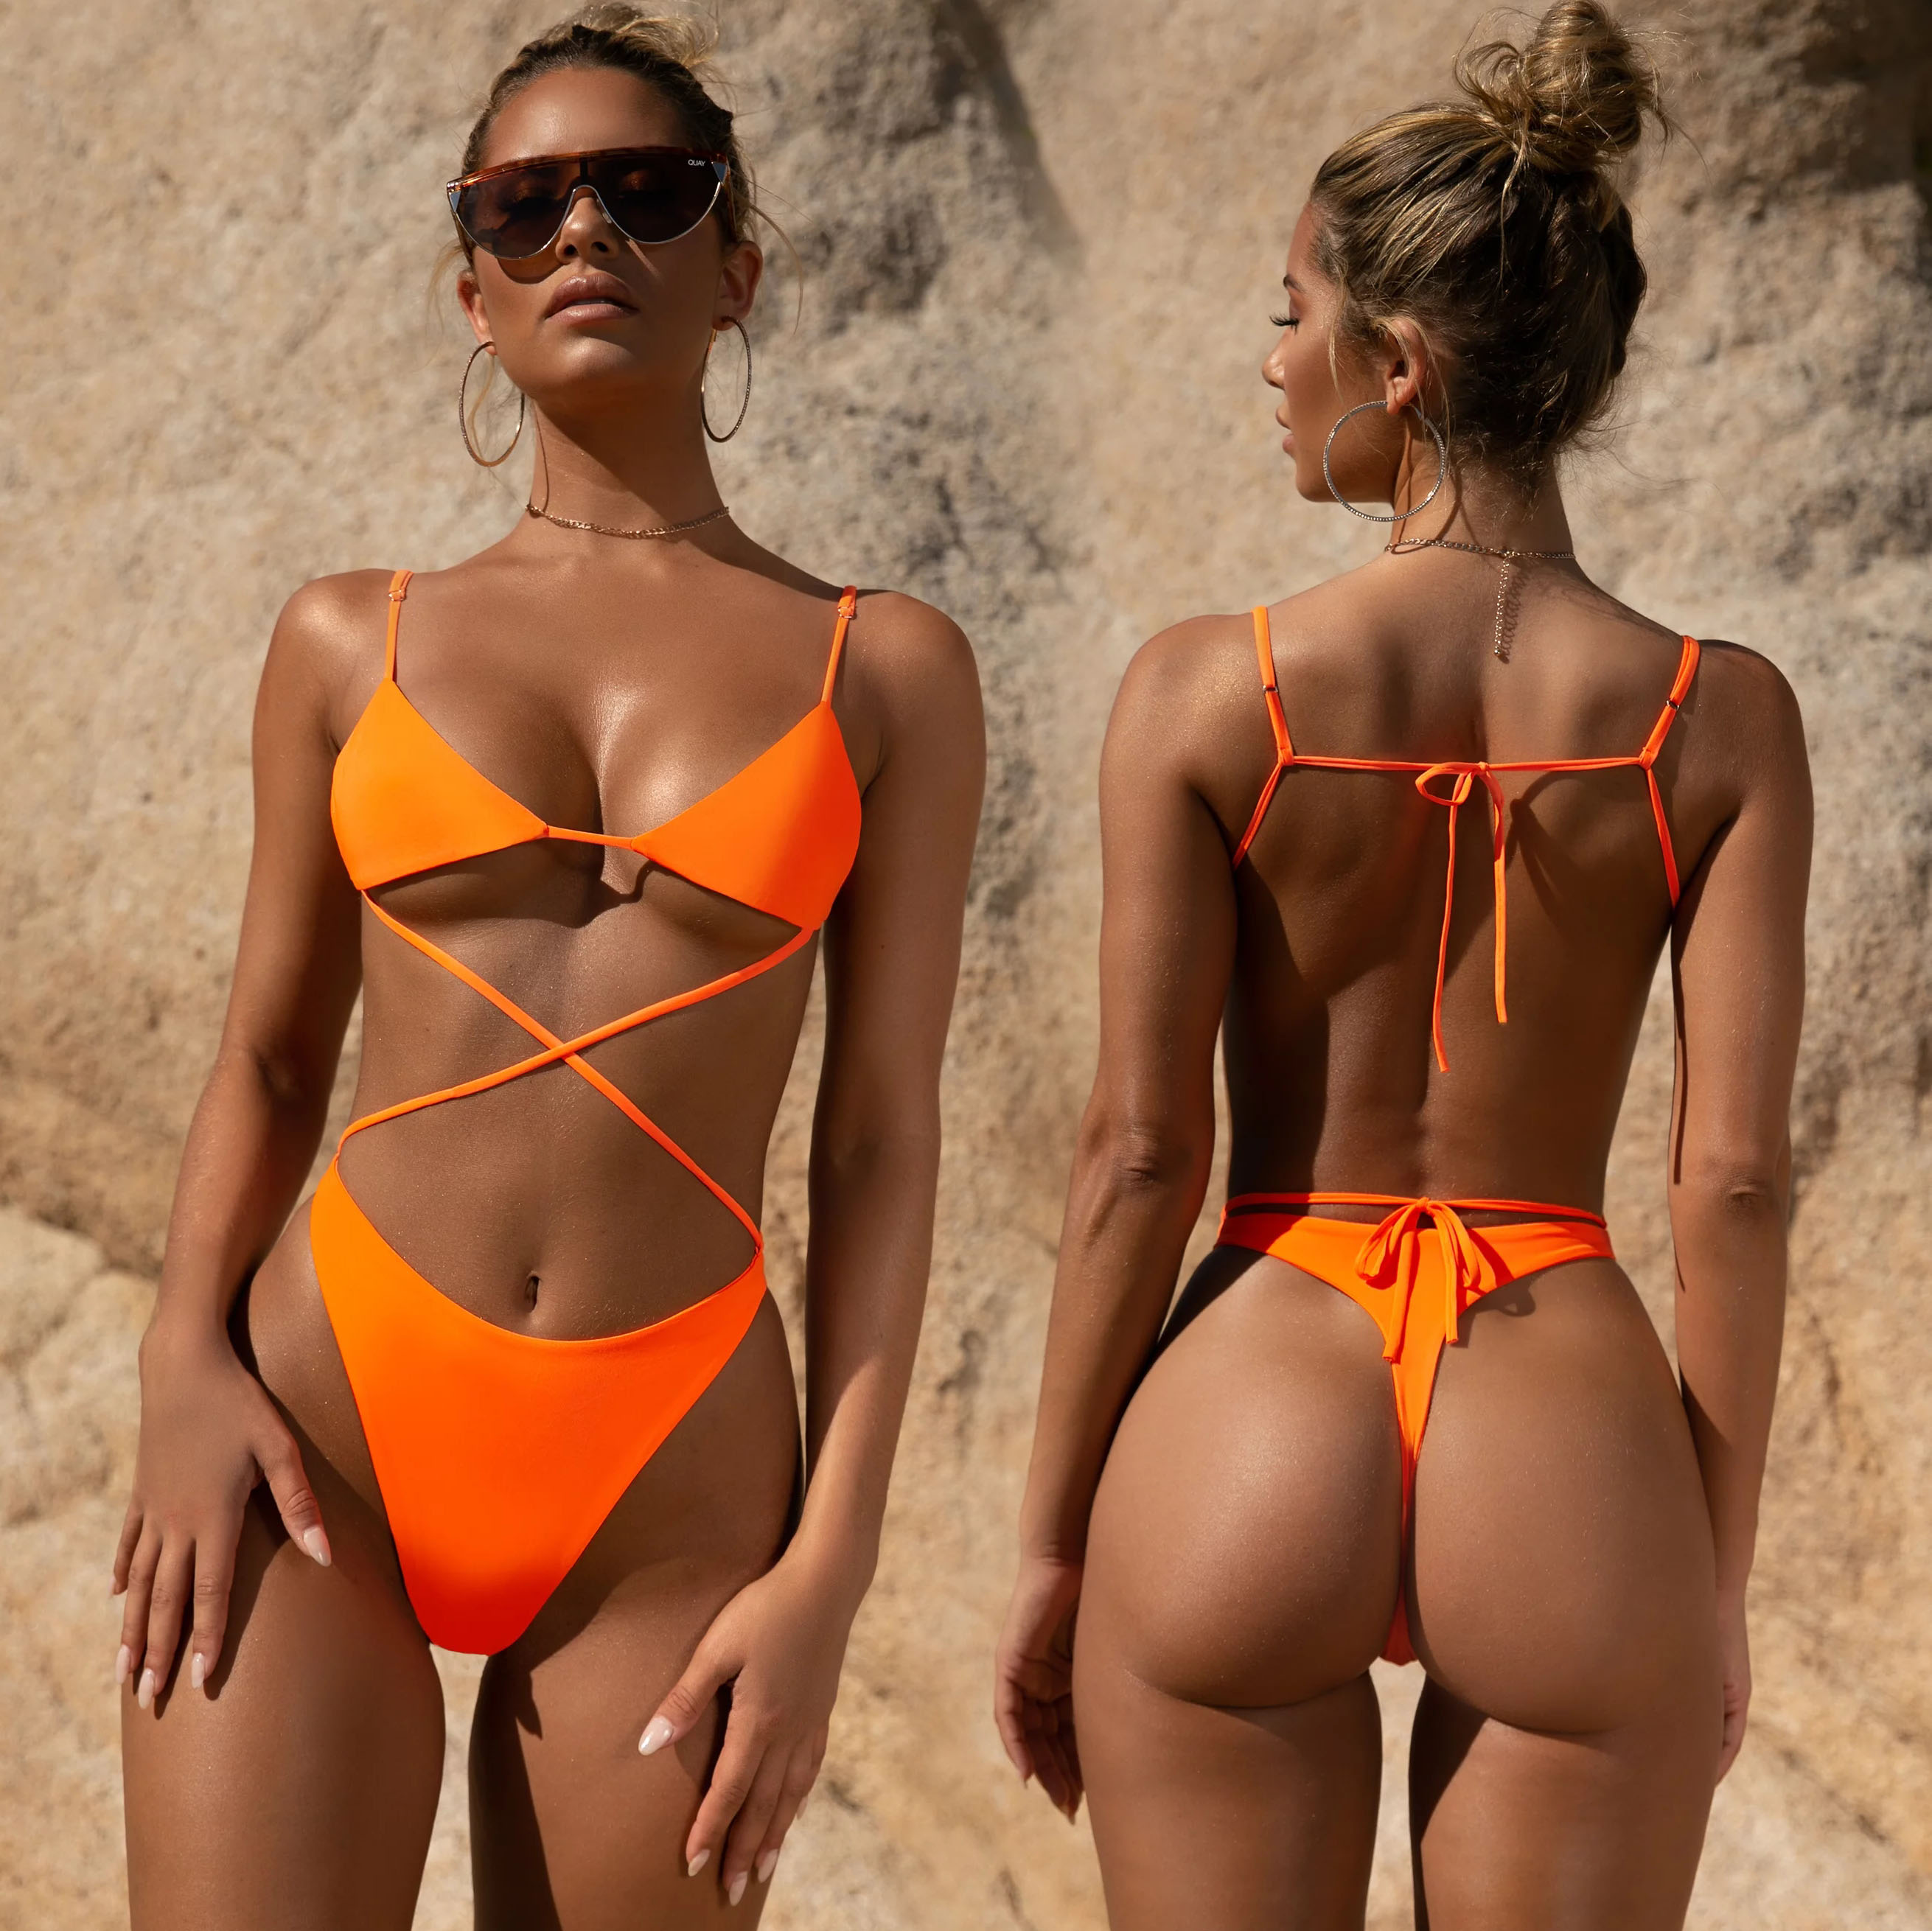 <font><b>2019</b></font> <font><b>Sexy</b></font> <font><b>Bikini</b></font> cross Bandage Fluorescent orange Swimsuit Summer Swimwear <font><b>Brazilian</b></font> Beachwear Bathing Suit Biquini FF107 image